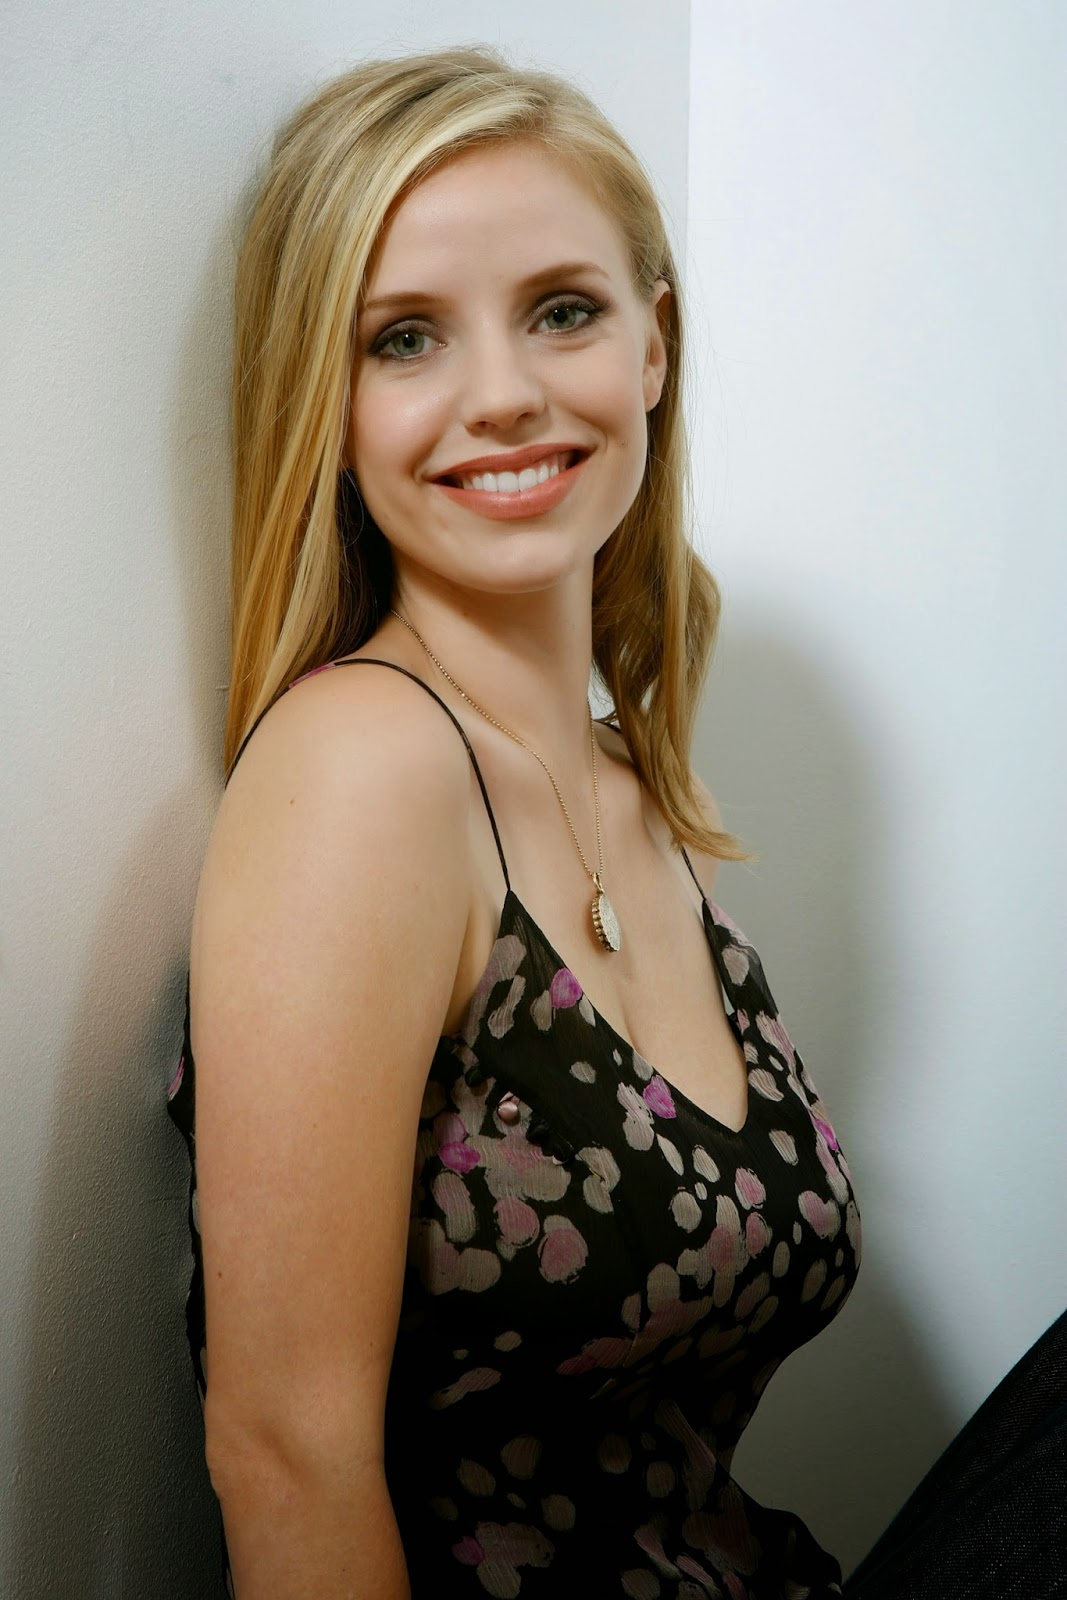 Images Kelli Garner nudes (18 foto and video), Tits, Paparazzi, Feet, braless 2020